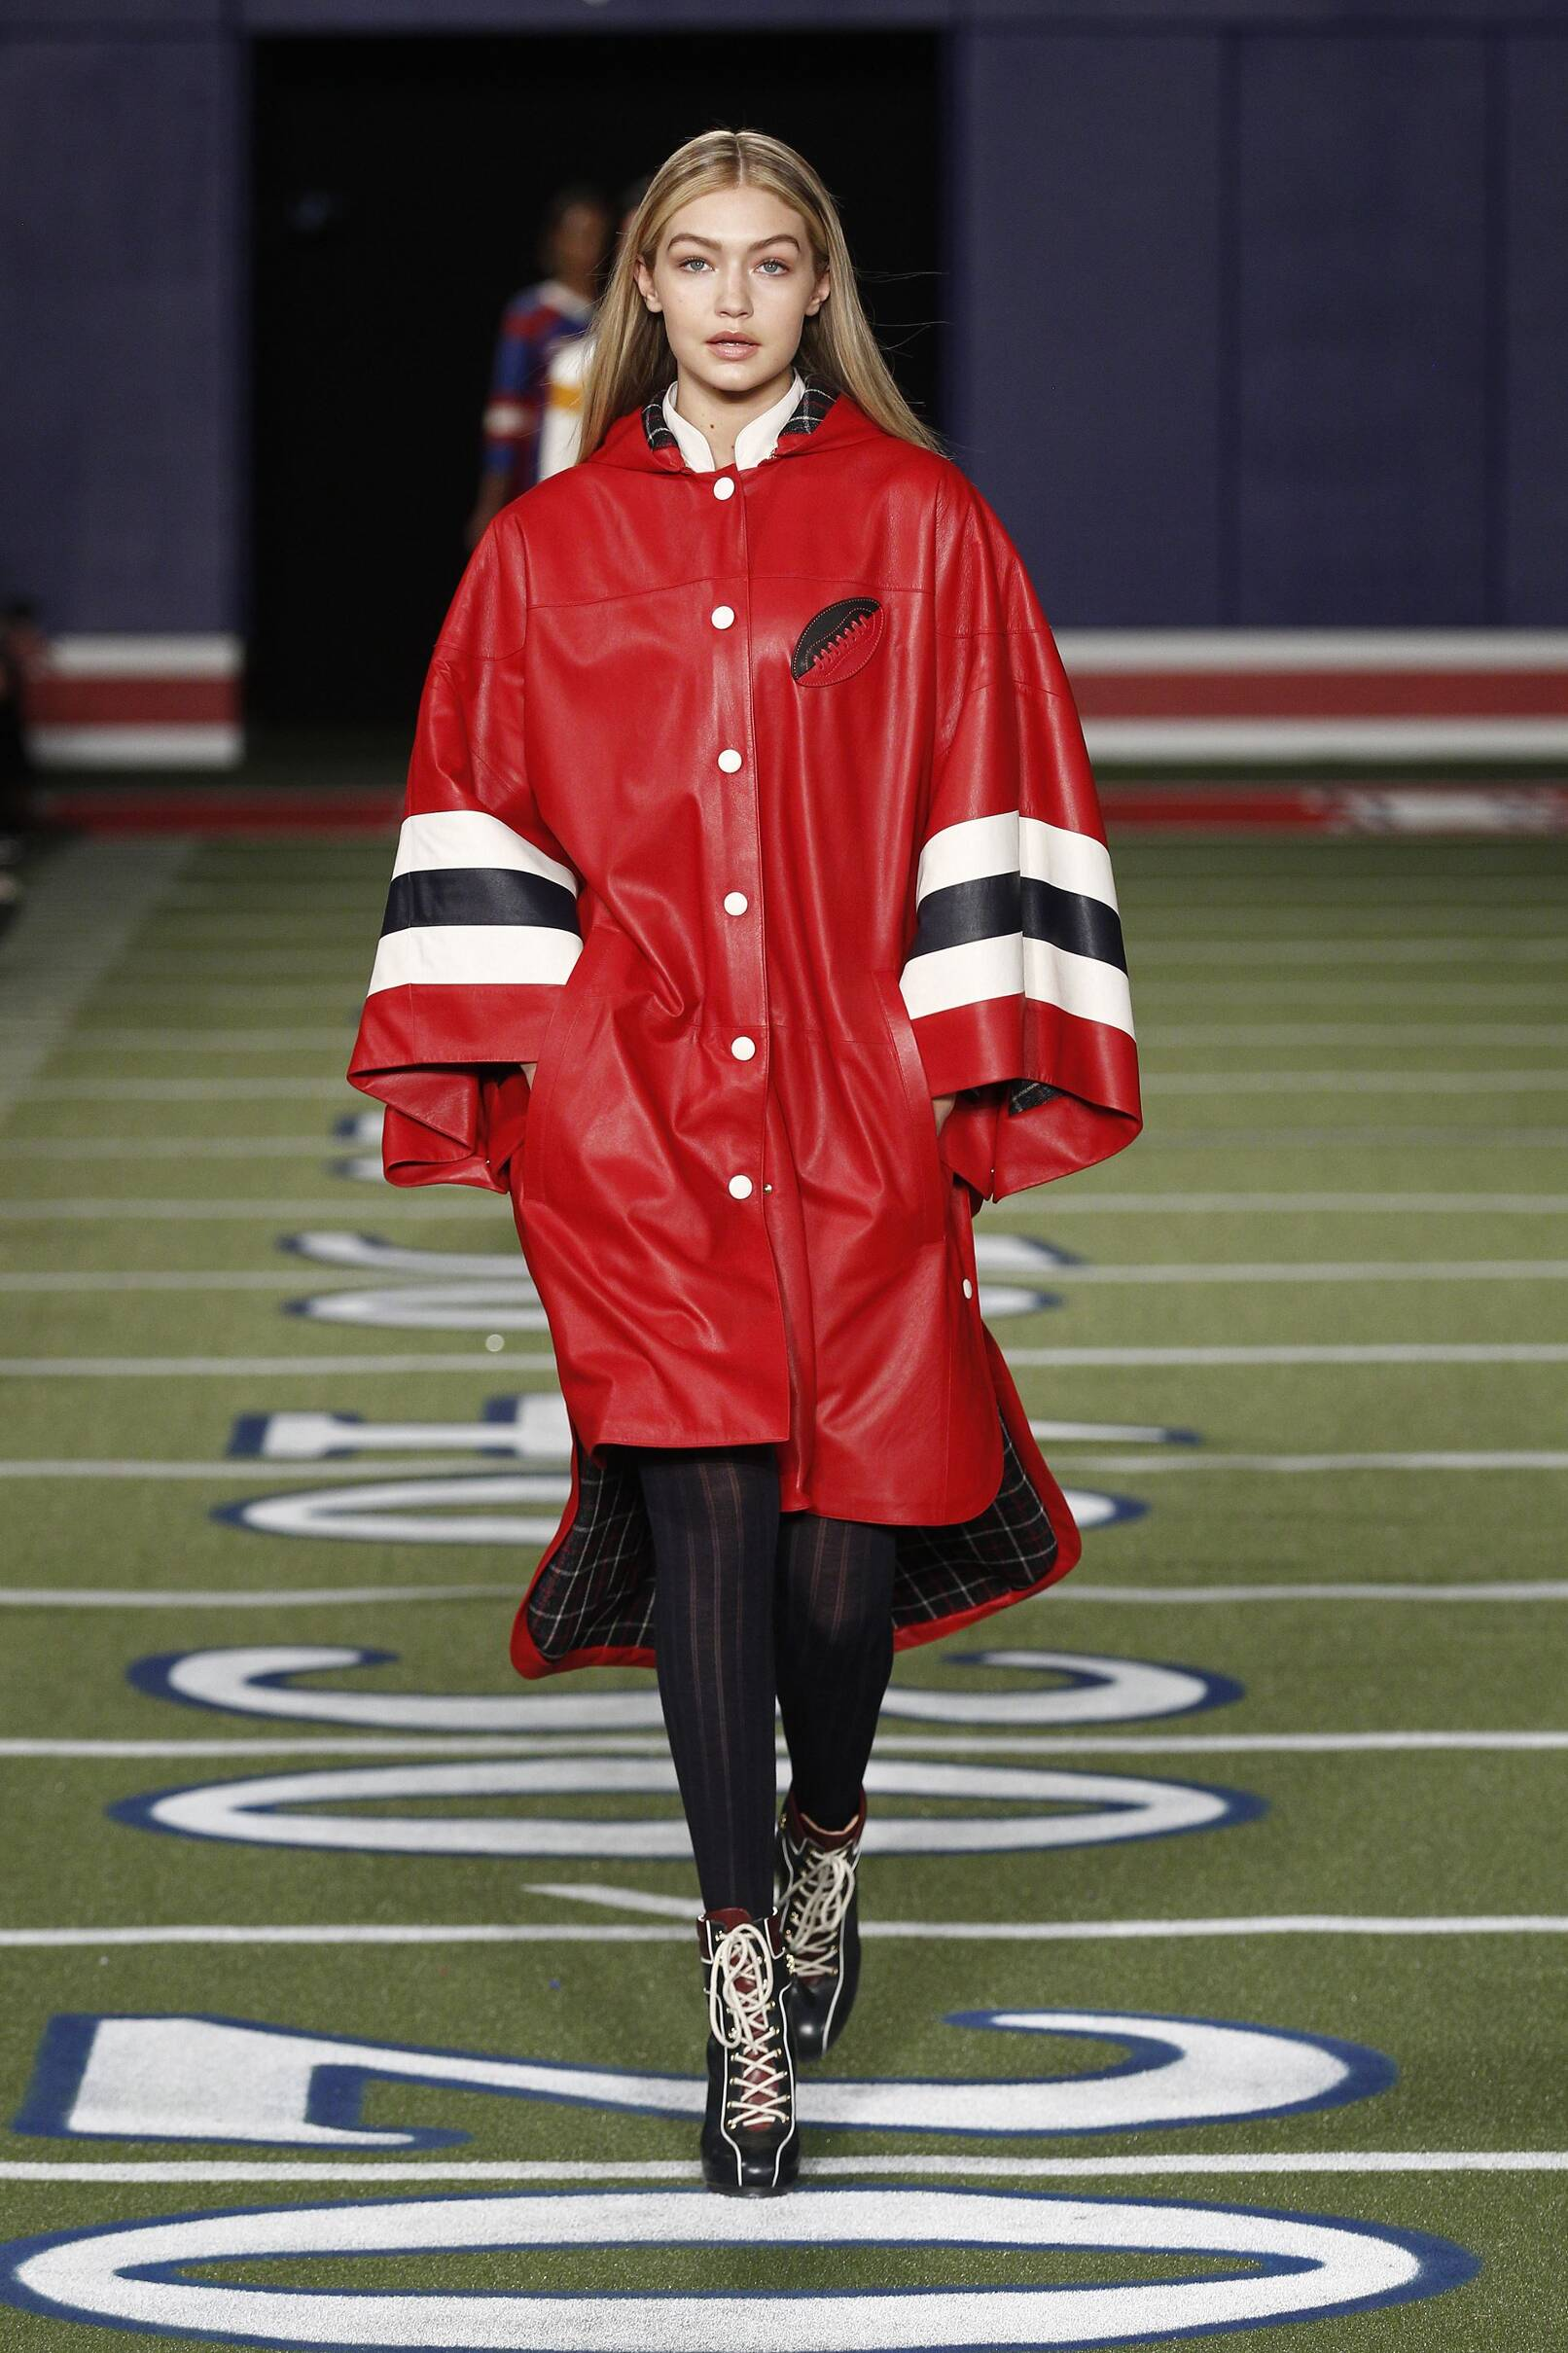 Tommy hilfiger fall winter 2015 16 women s collection the skinny beep - Tommy hilfiger show ...